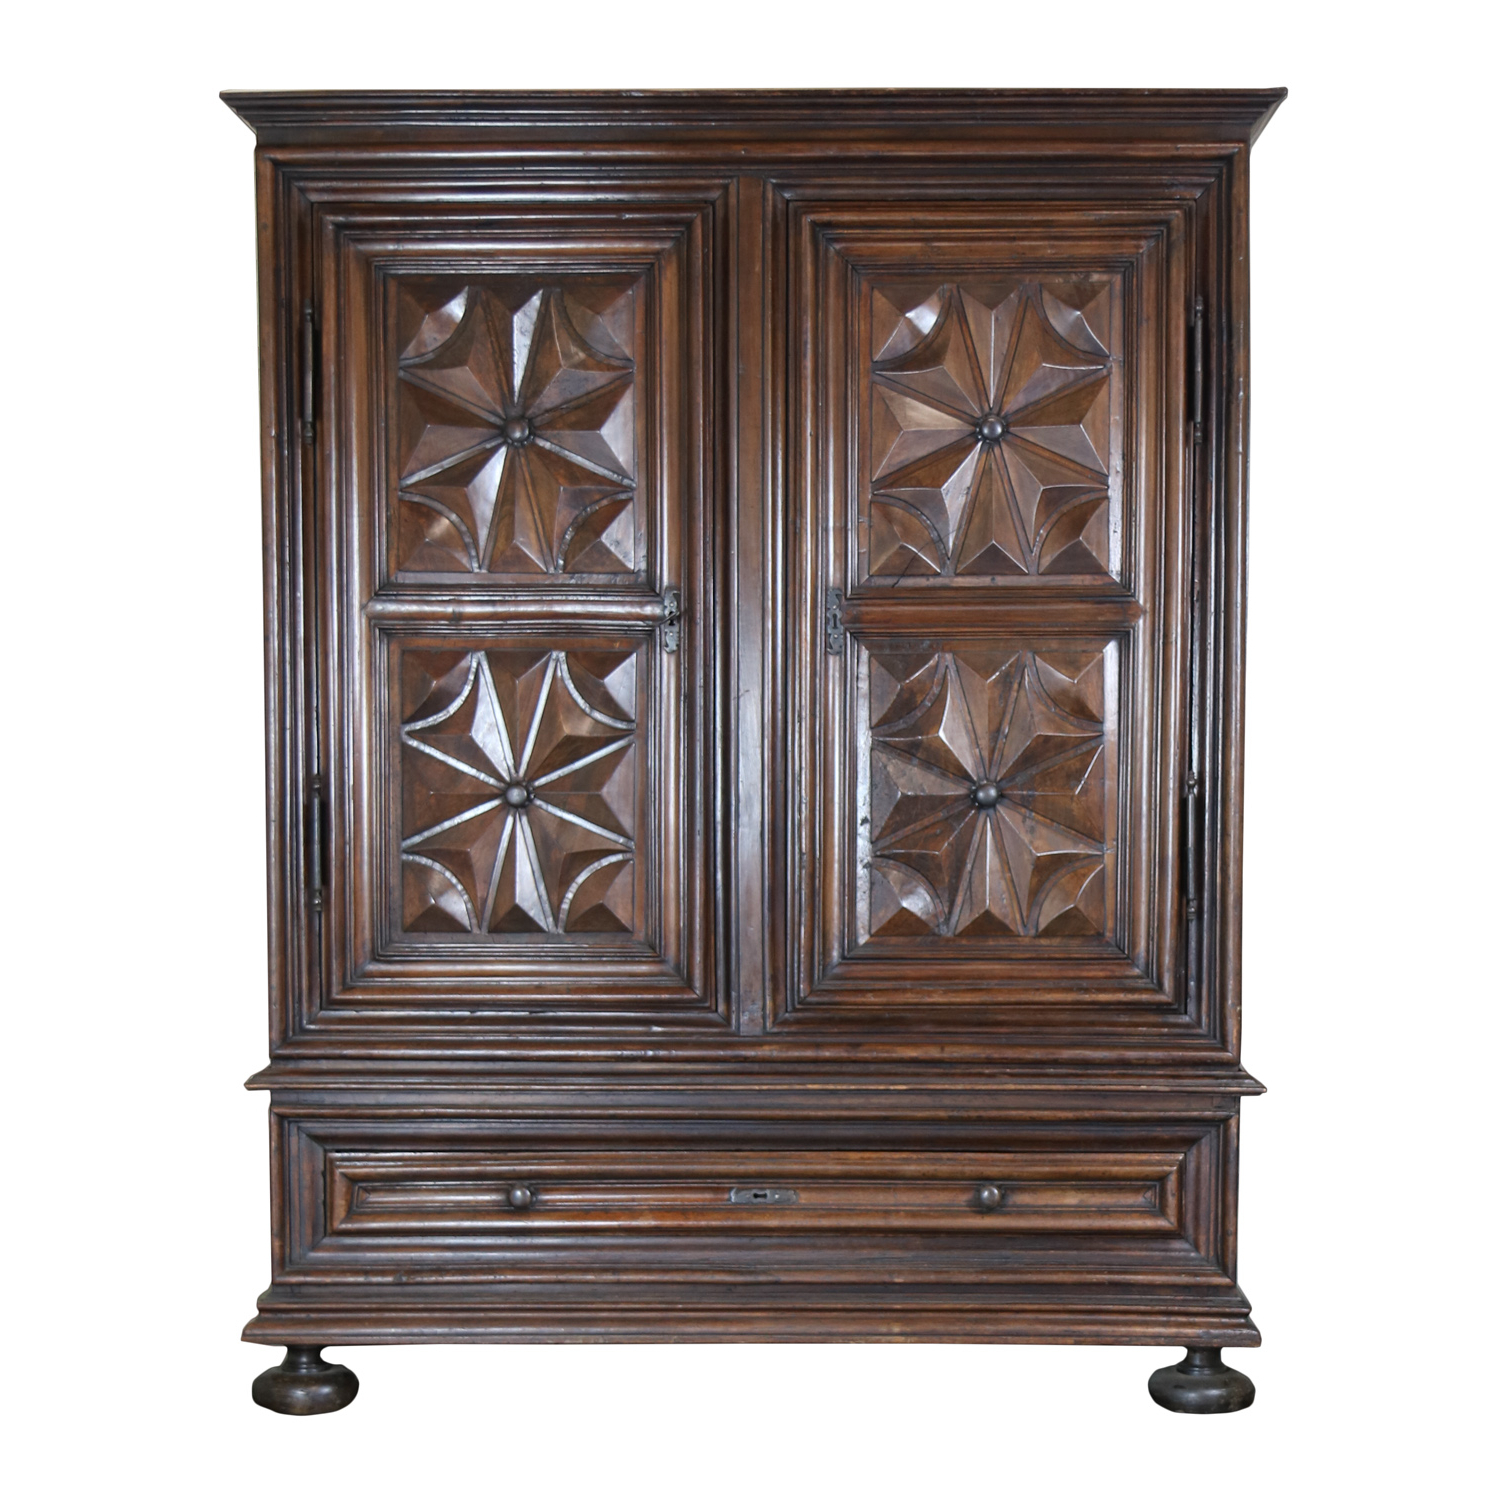 Well Liked Louis Xiii Period Carved Walnut Armoire (View 19 of 20)